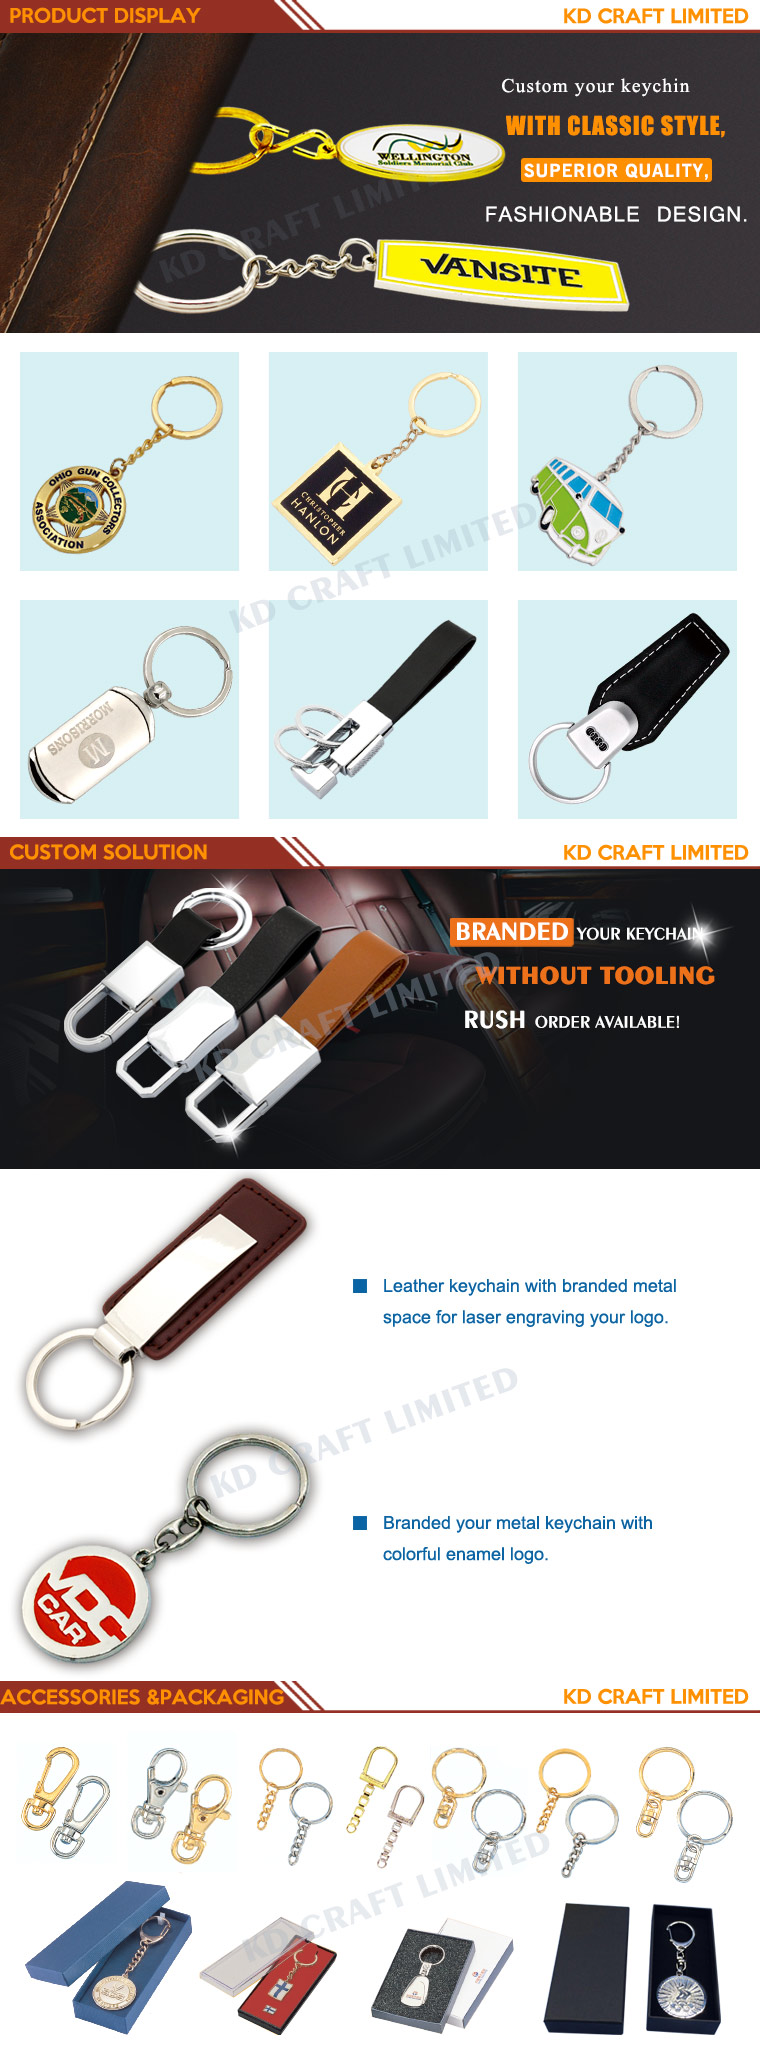 High Quality China Wholesale Leather Key Ring or Chain From China